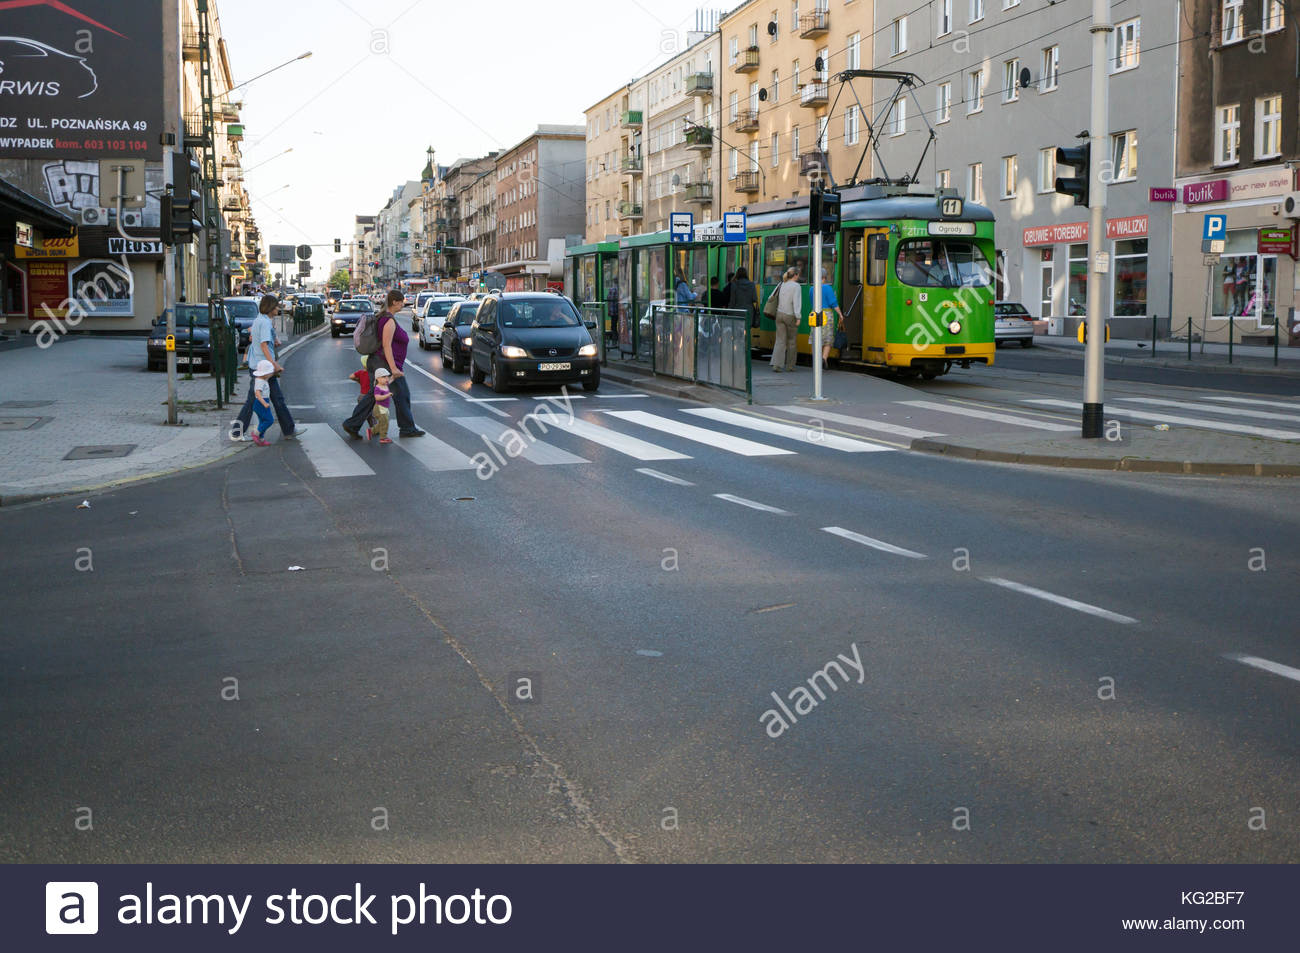 People on the zebra crossing at the busy Glogowska street in Poznan, Poland Stock Photo